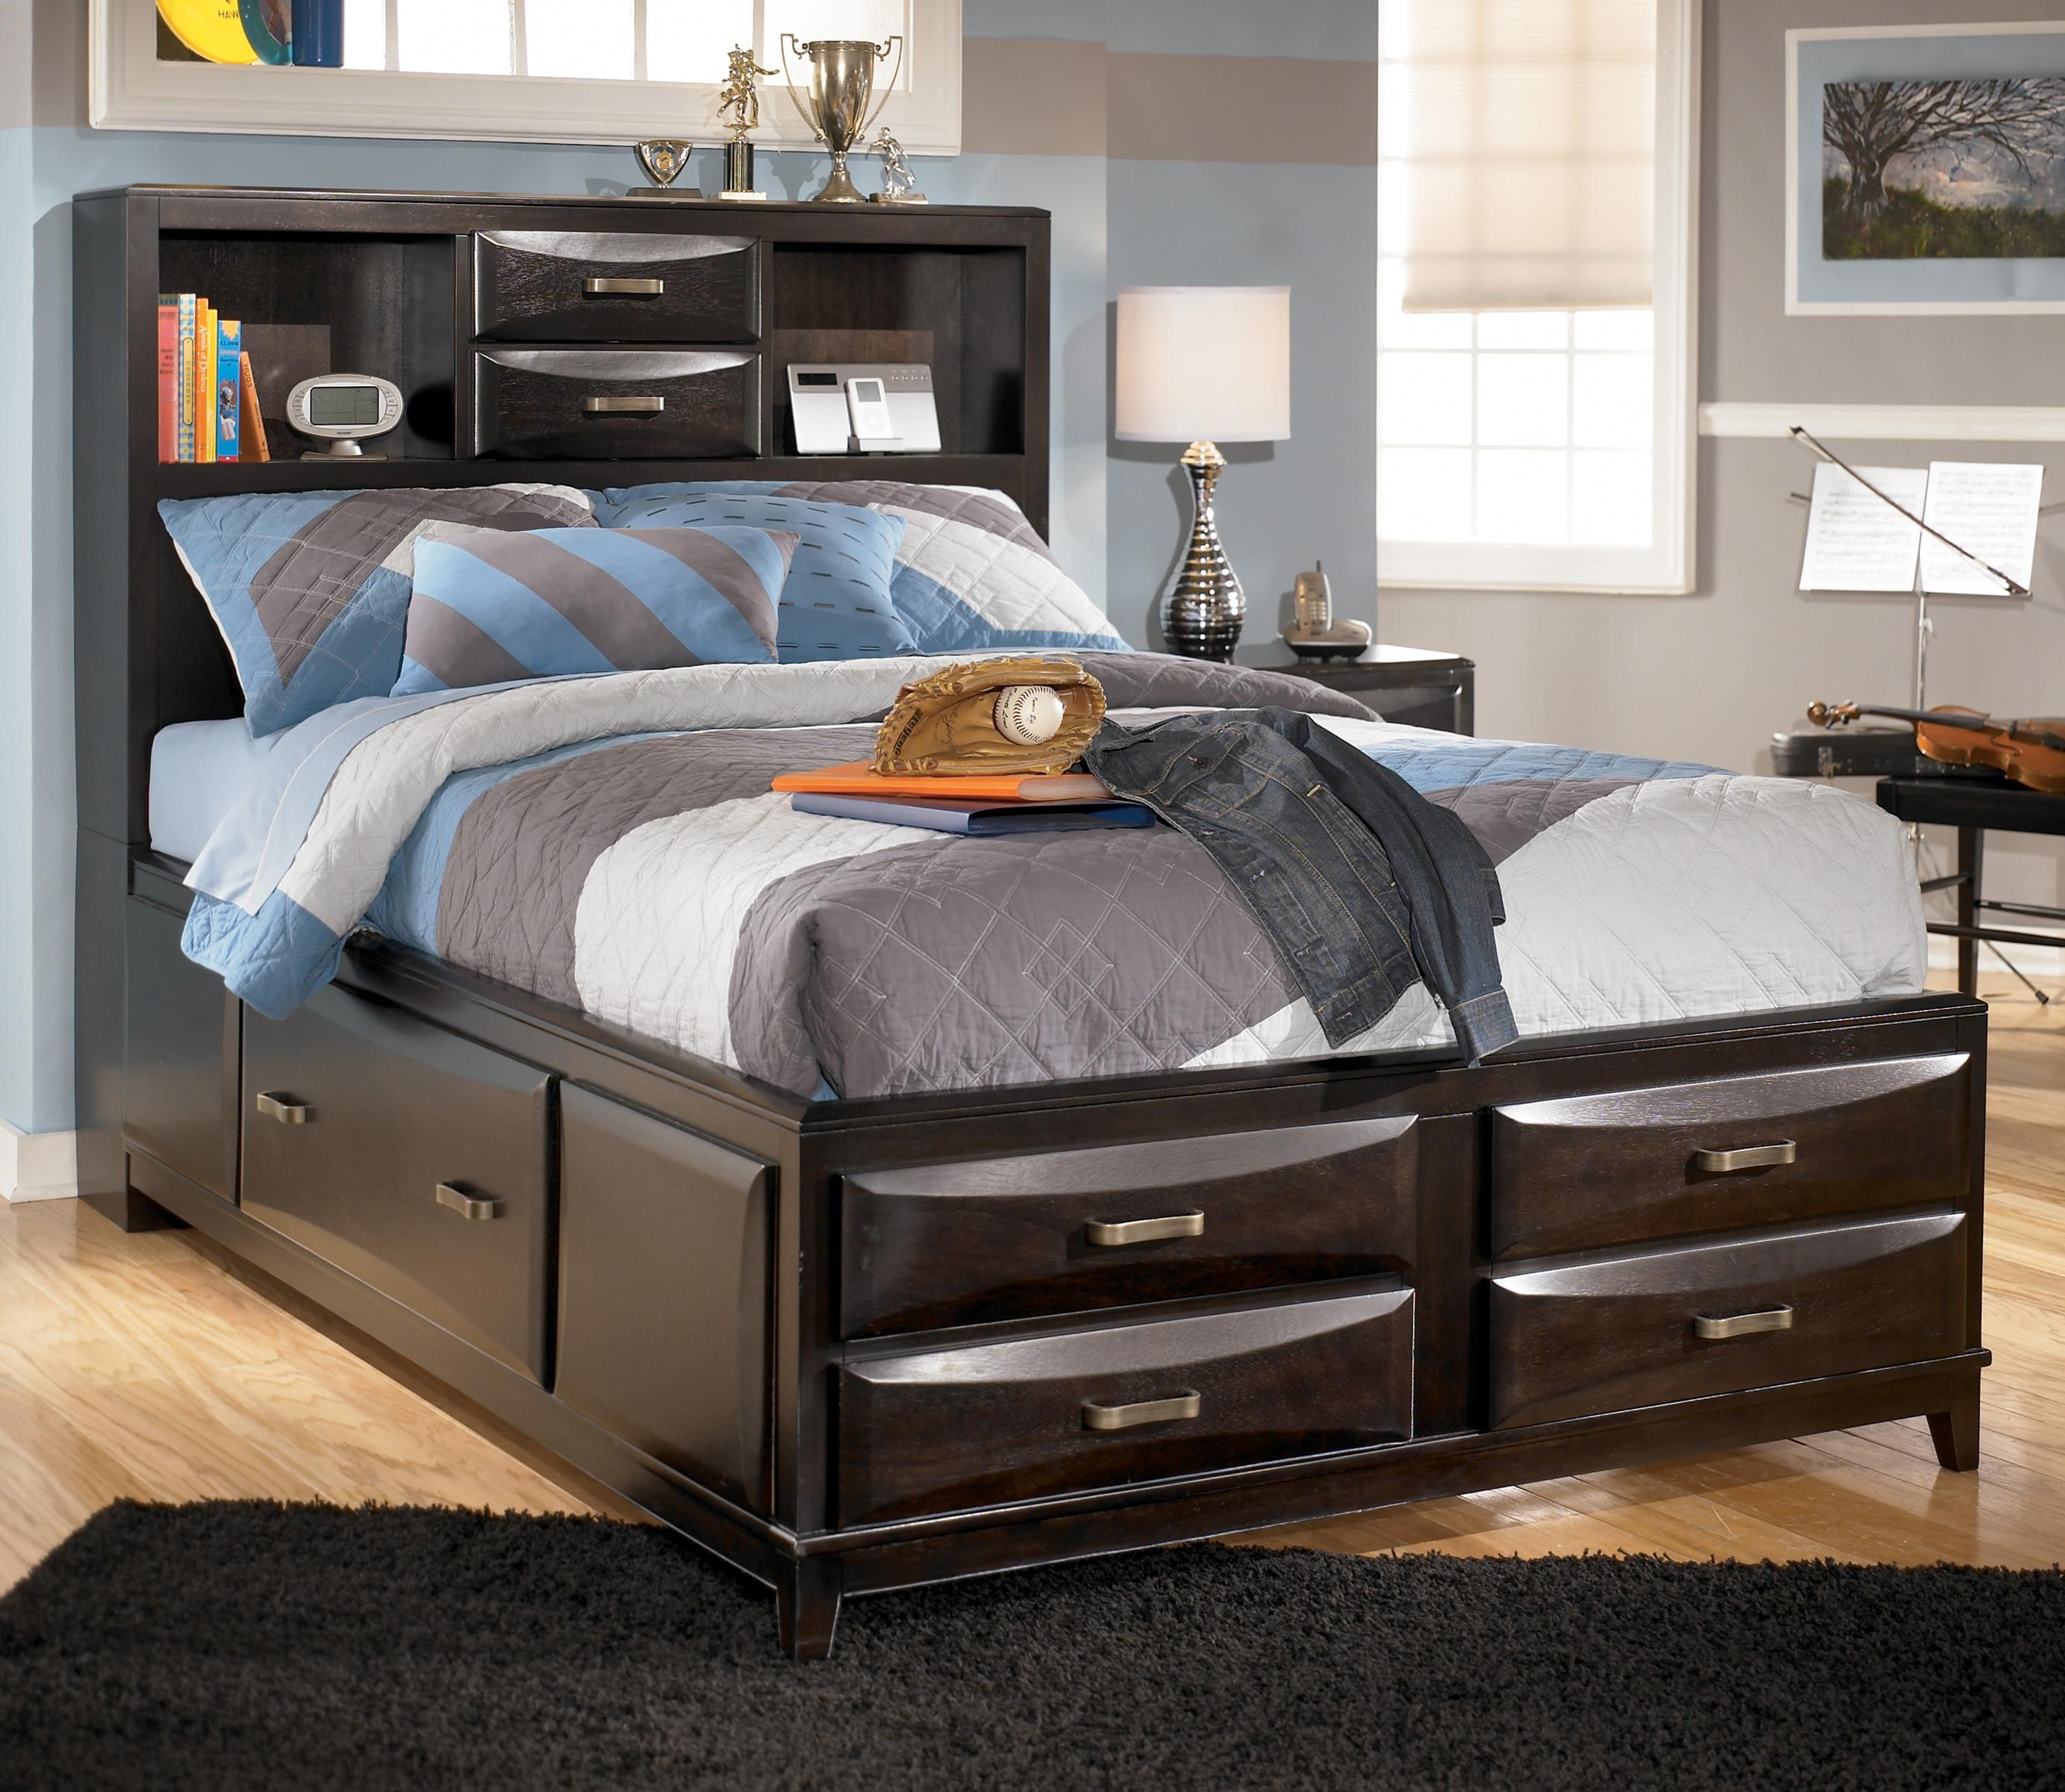 Huntington Bedroom Furniture Kira Full Storage Bed By Ashley Furniture At Michael S Furniture Warehouse